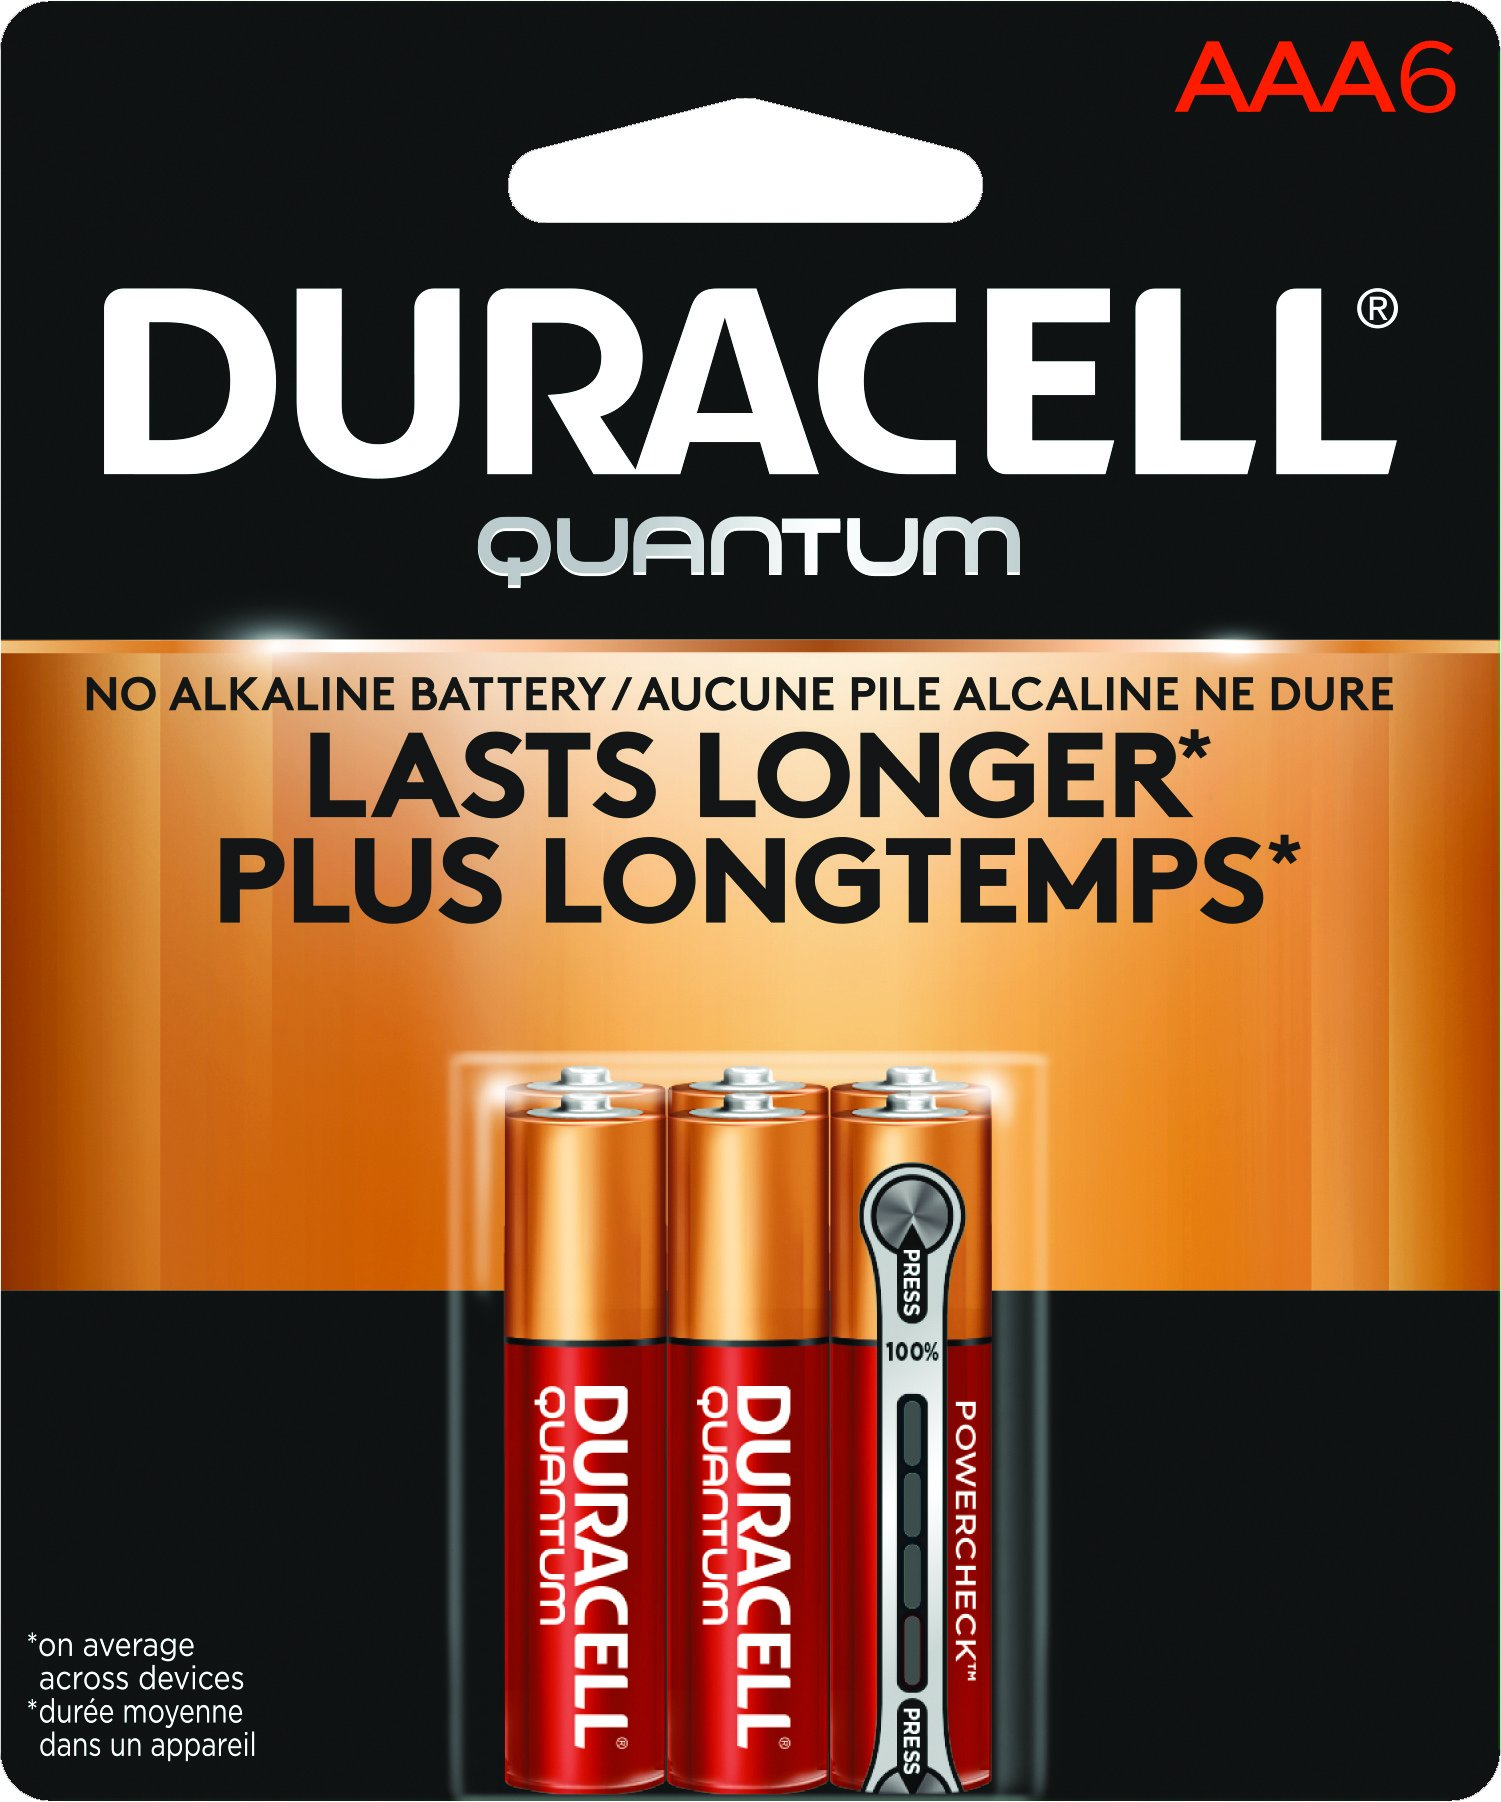 duracell quantum alkaline aa batteries 6 count health personal care. Black Bedroom Furniture Sets. Home Design Ideas